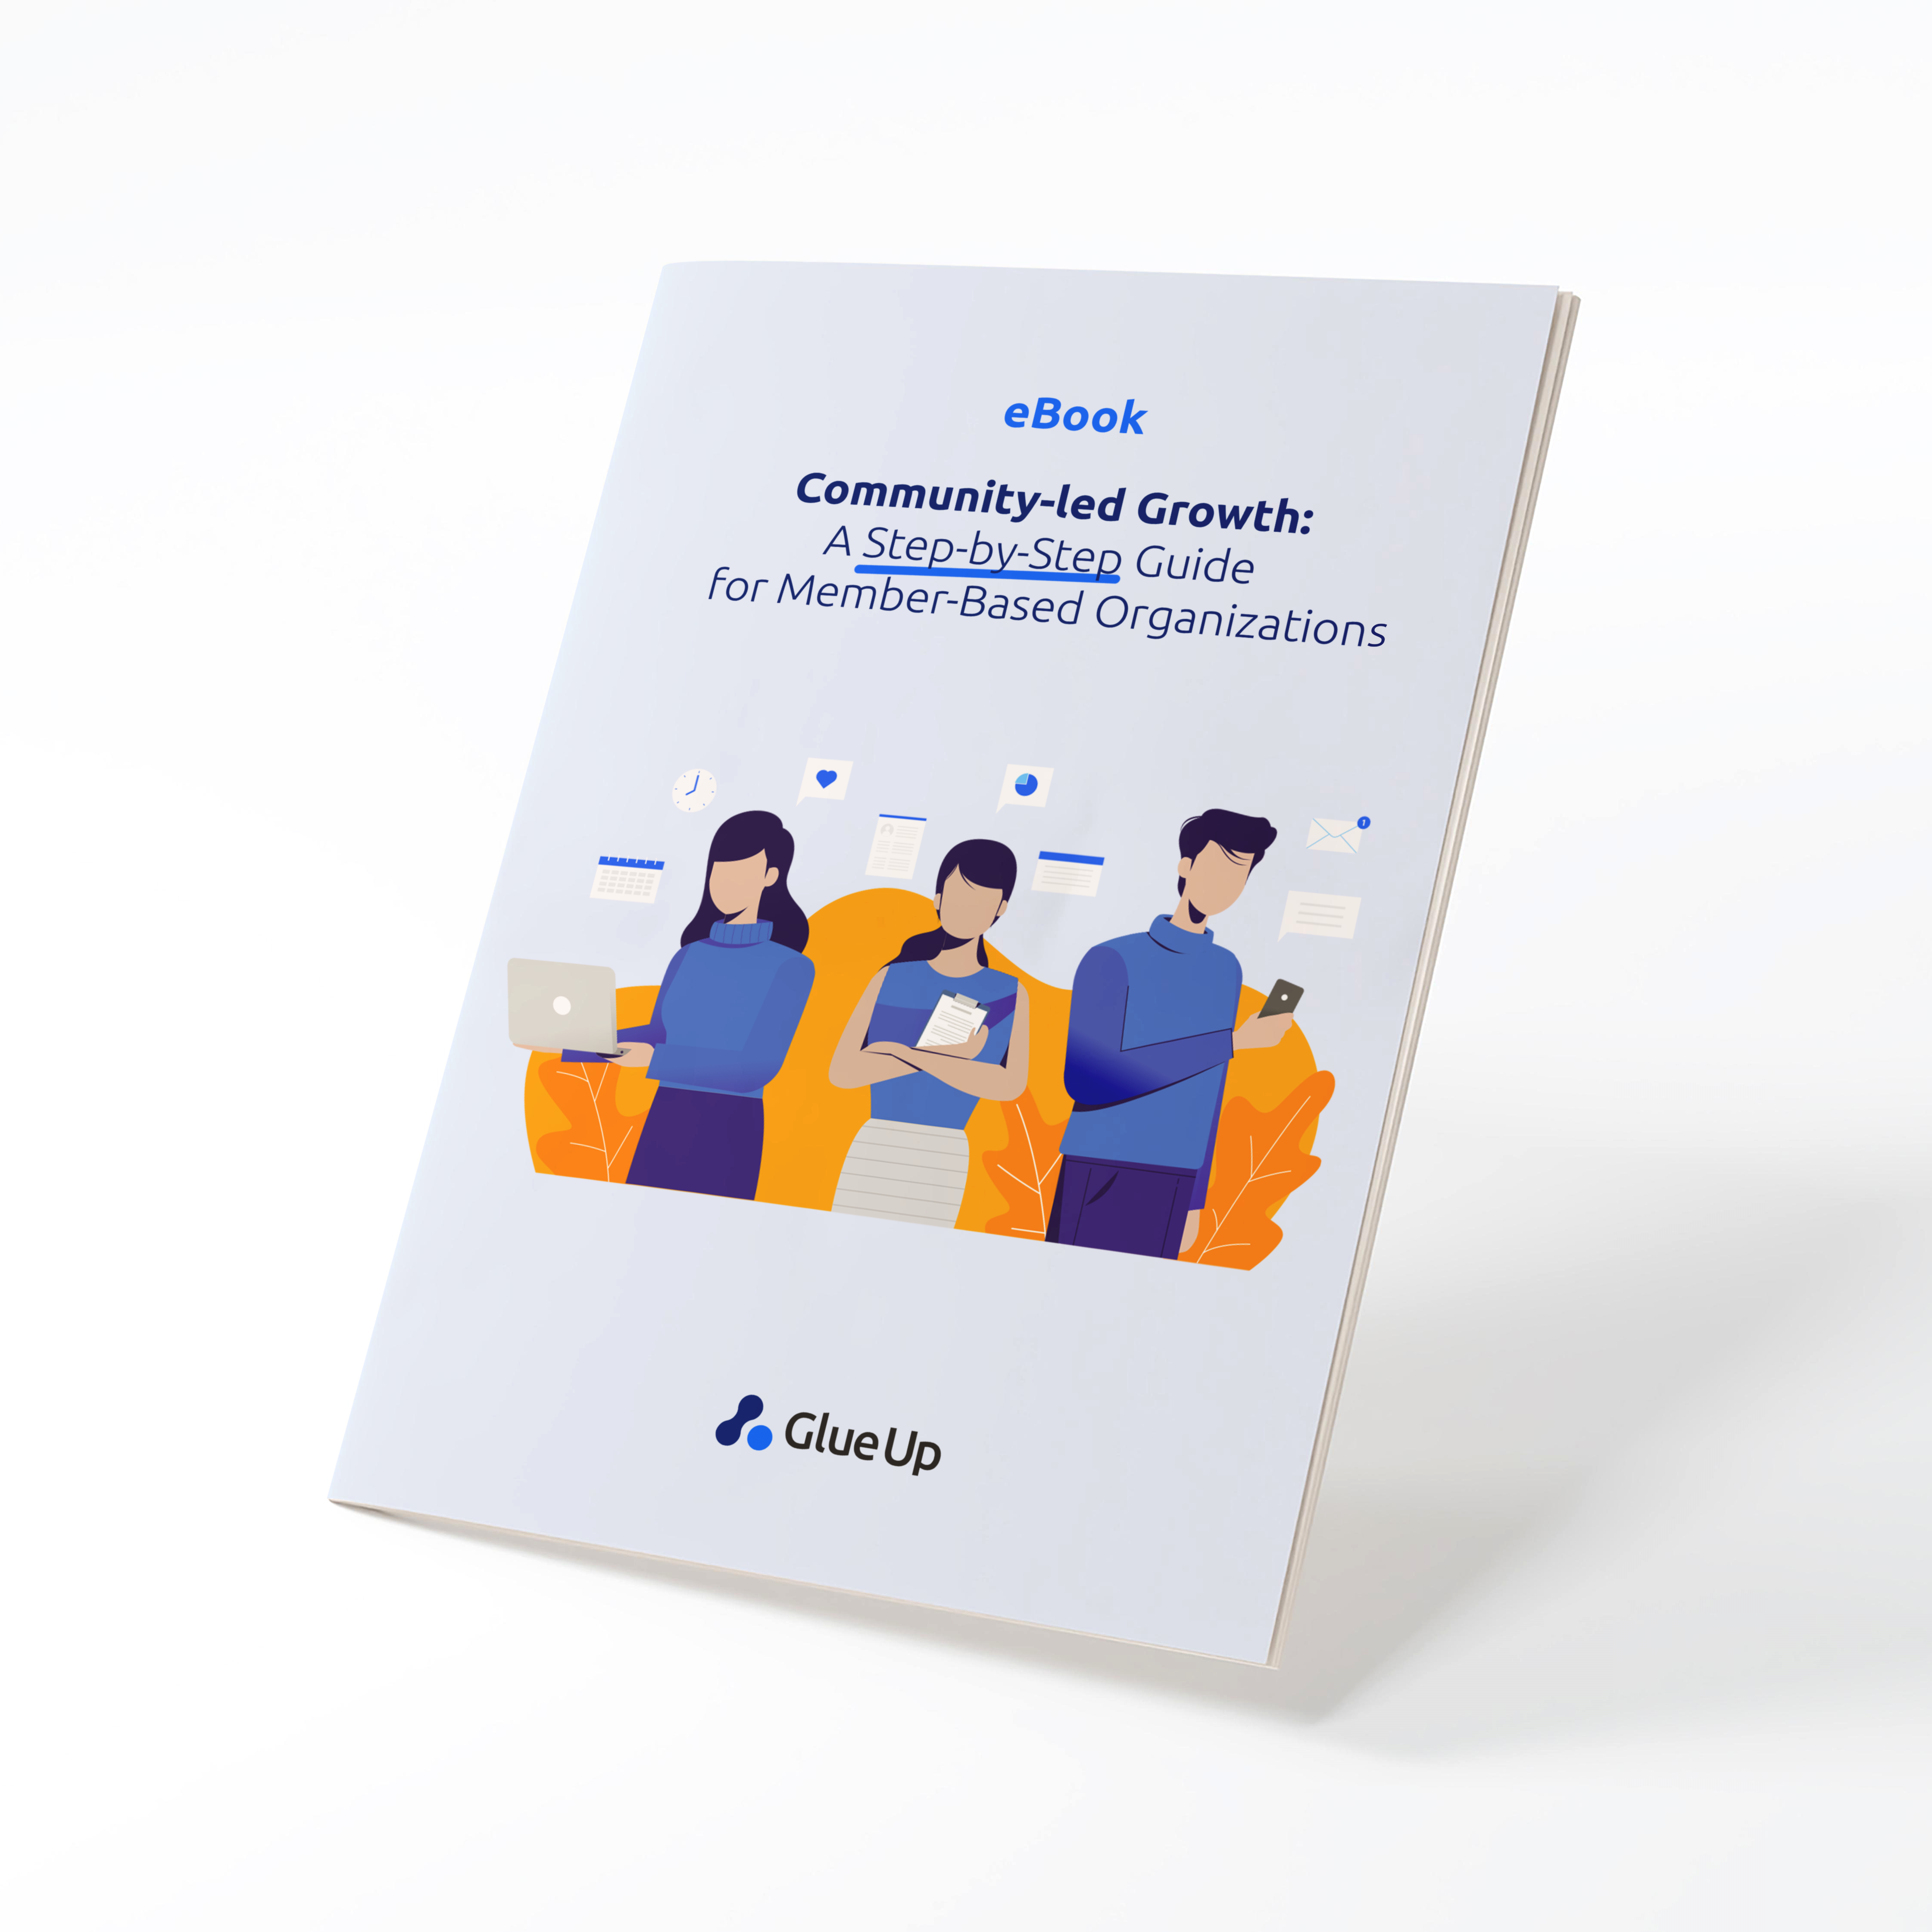 Community-led Growth: A Step-by-Step Guide for Member-Based Organizations